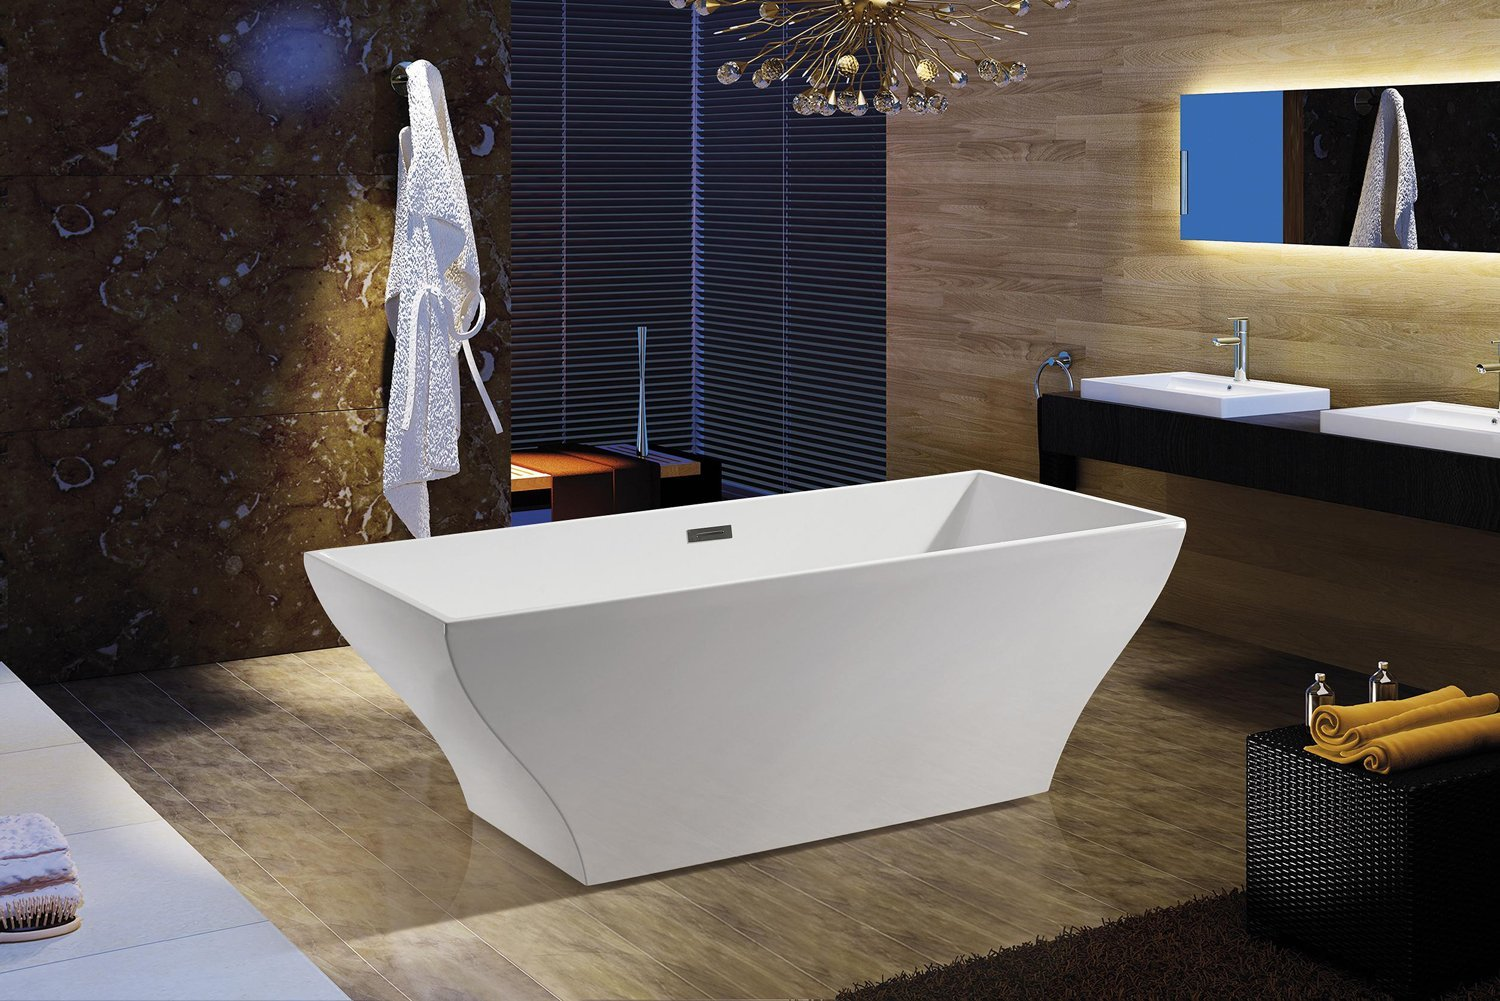 Top 5 Stand Alone and Freestanding Soaking Bathtubs